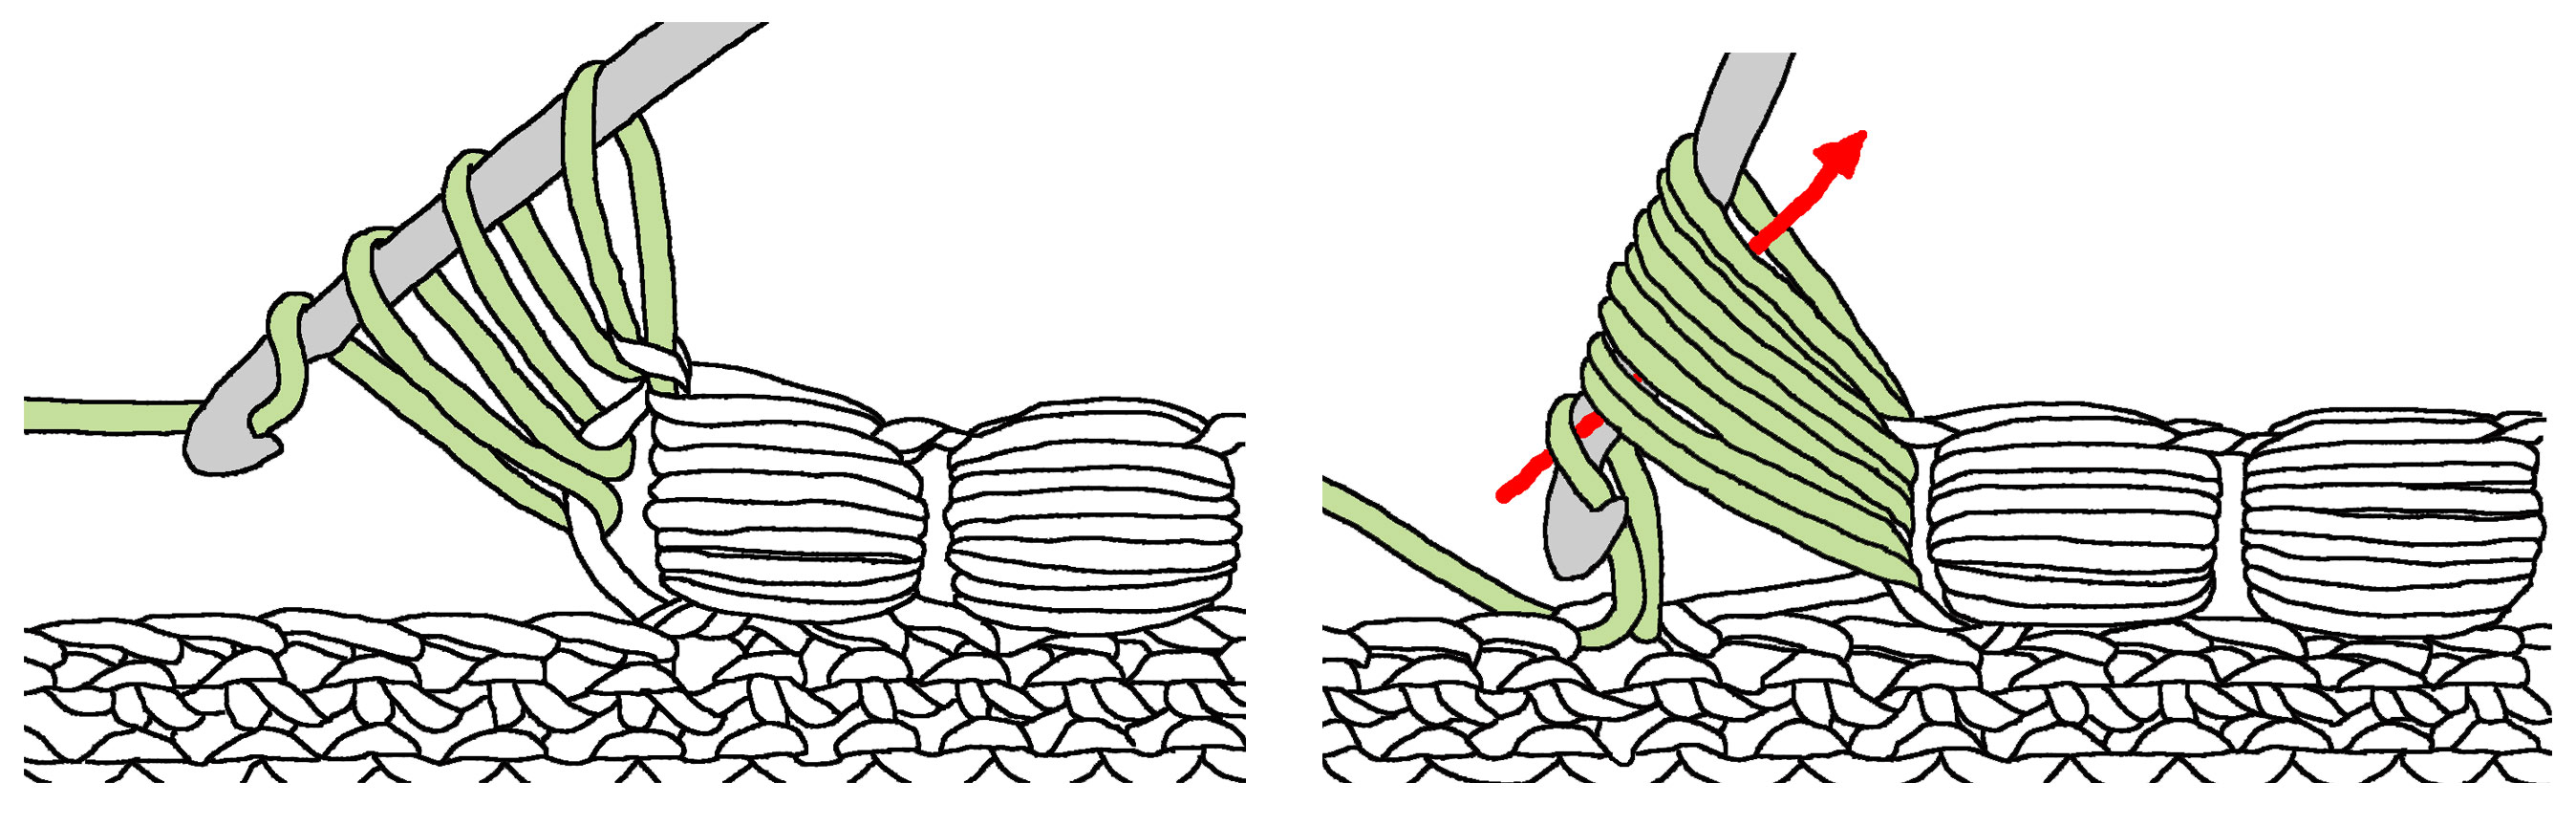 Crochet Stitches Decorative : ... side. Use them to add texture to your work or as decorative edging